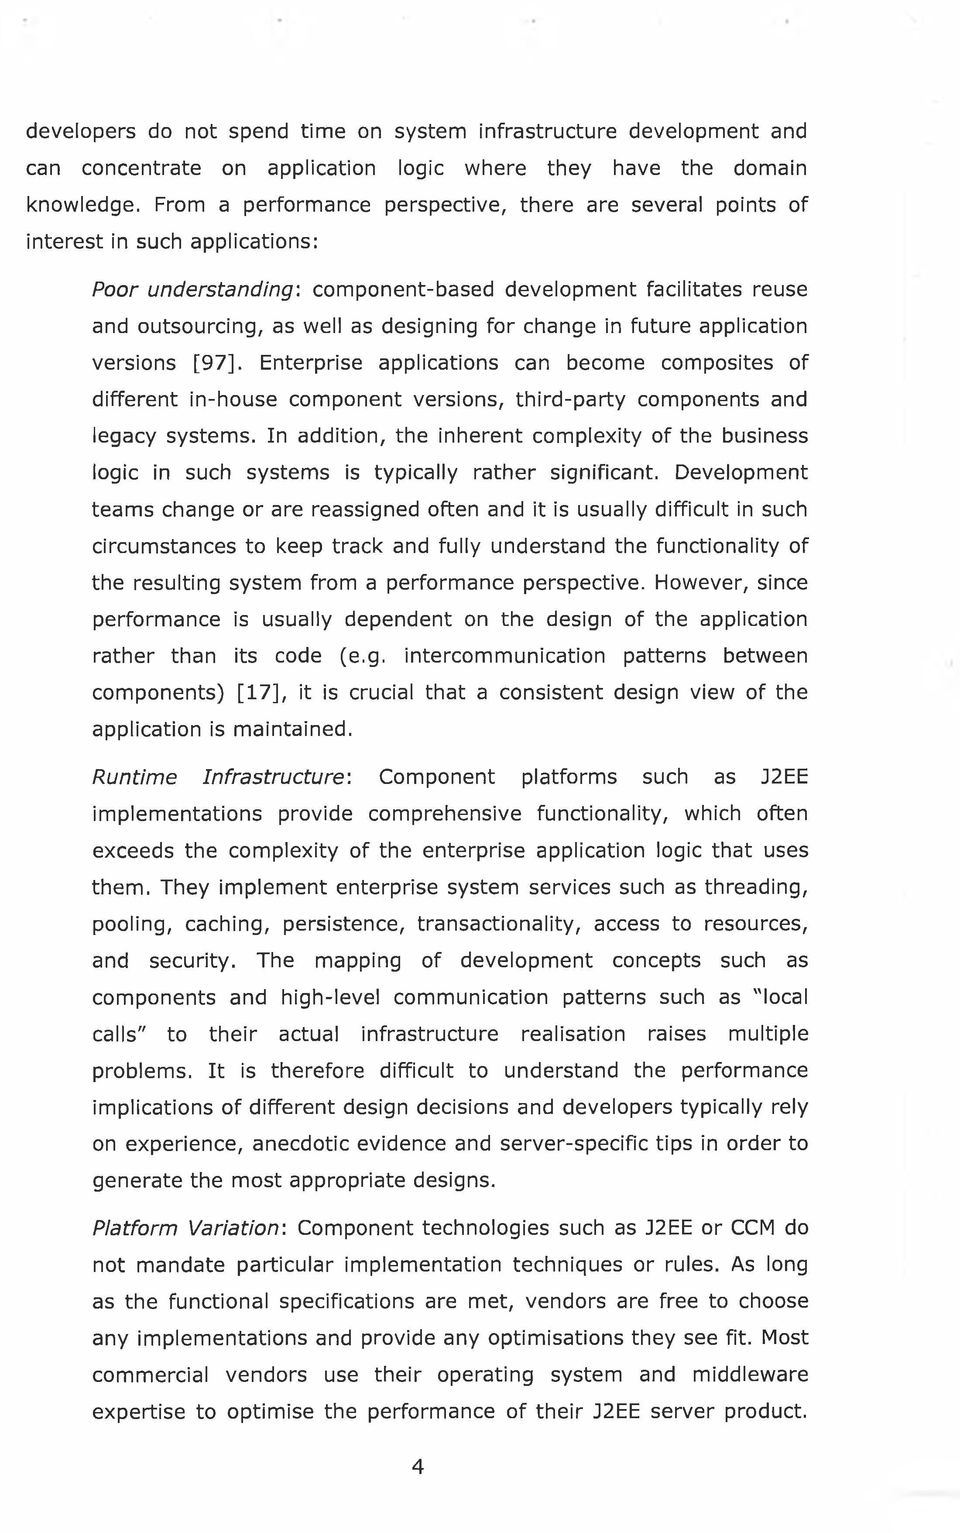 change in future application versions [97]. Enterprise applications can become composites of different in-house component versions, third-party components and legacy systems.